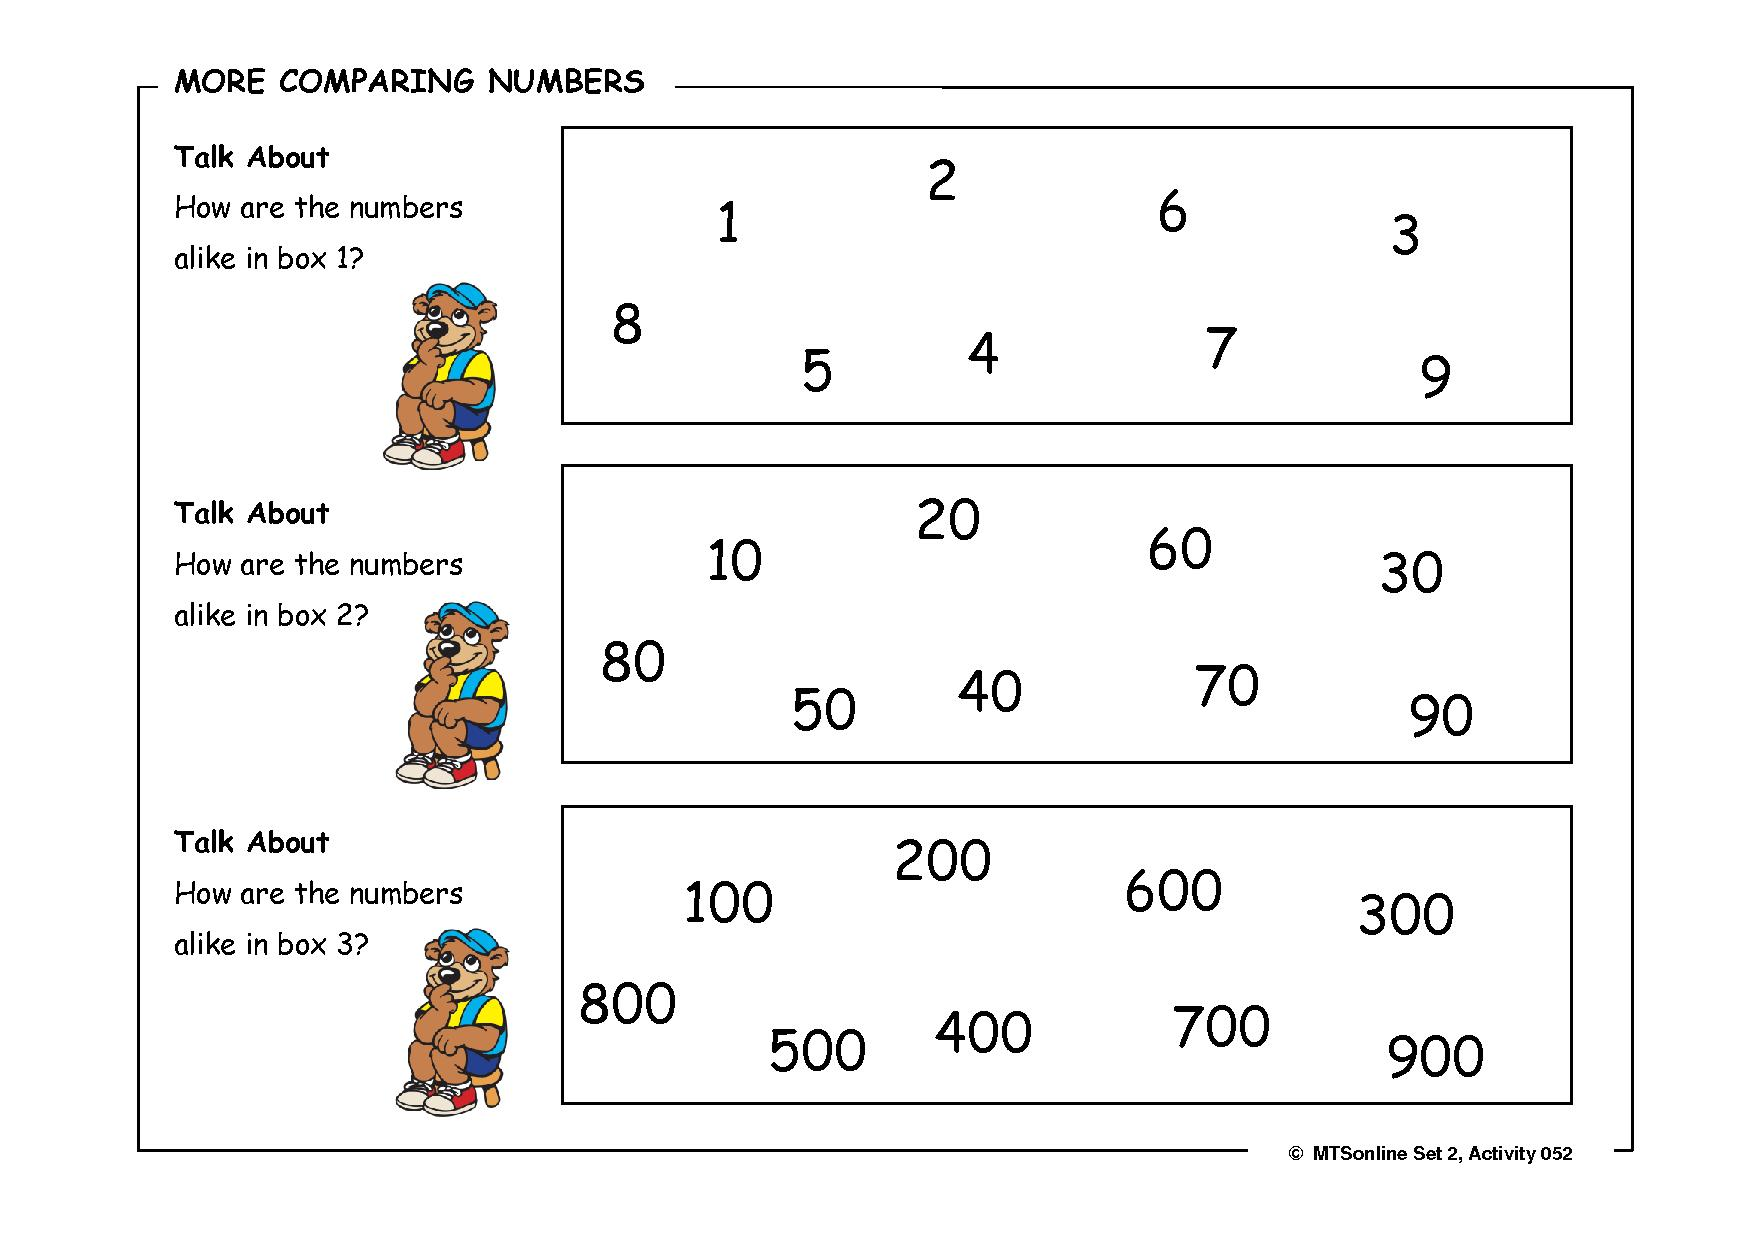 052more_comparing_numbers0001